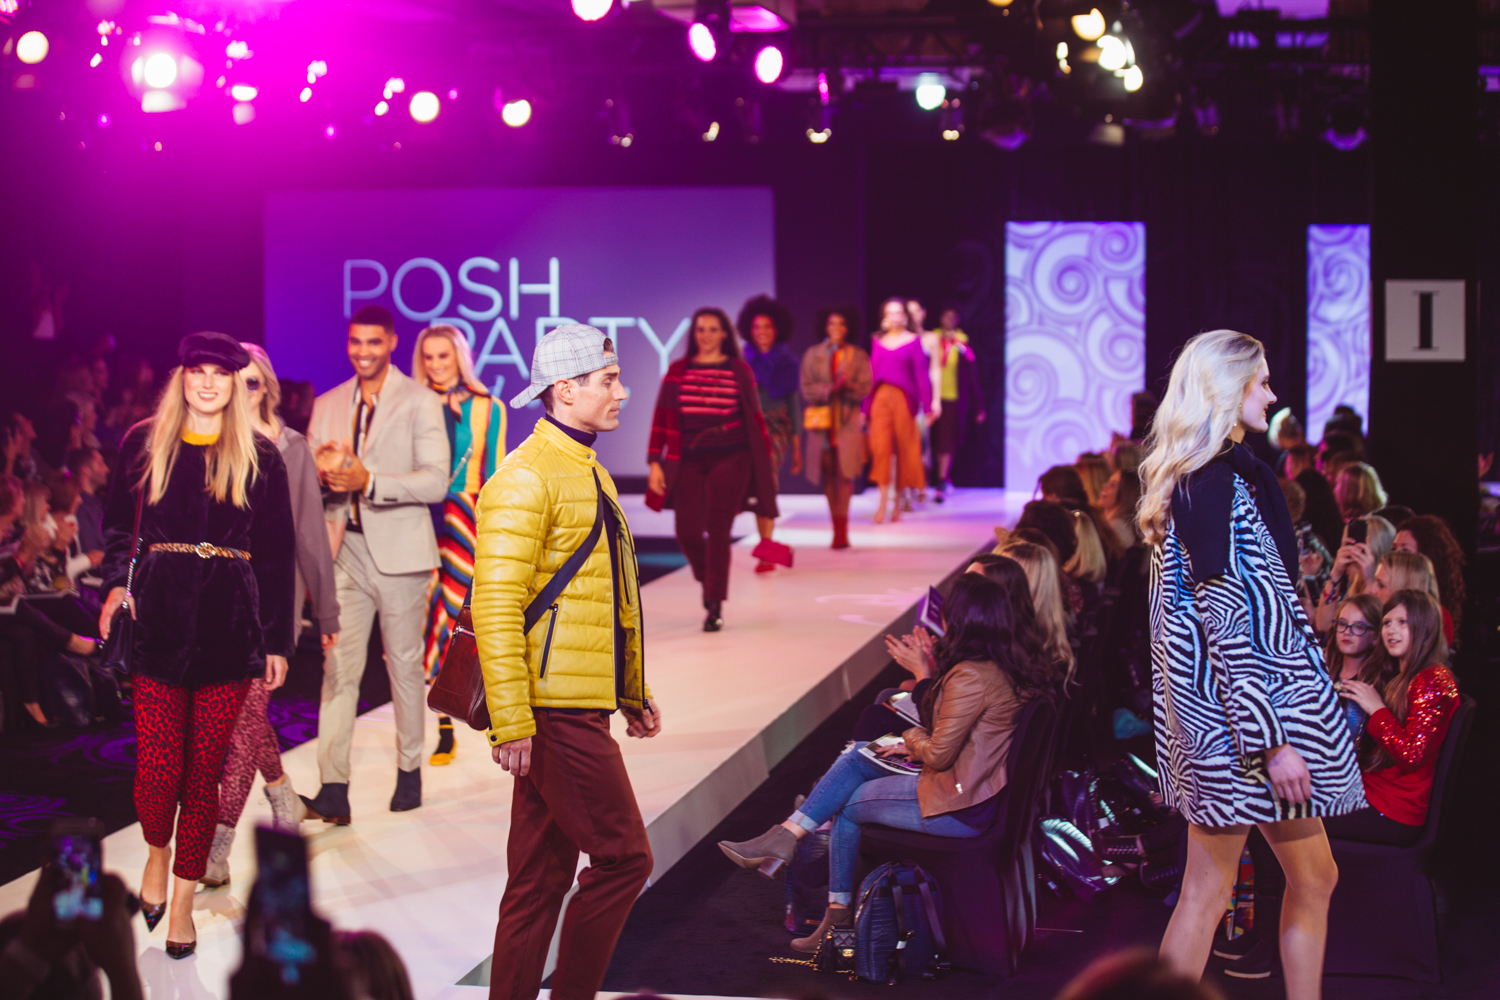 Welcome to a glimpse of Bellevue's Poshest Party of the year! It's Fashion Week at The Bellevue Collection, and last night (Sept. 21) marked their annual Posh Party Trend Show, an event highlighting trends from The Bellevue Collection's Fall 2018 Look Book. Everything you see on the models is available somewhere in the shopping center. (Image: Ryan McBoyle / Seattle Refined)